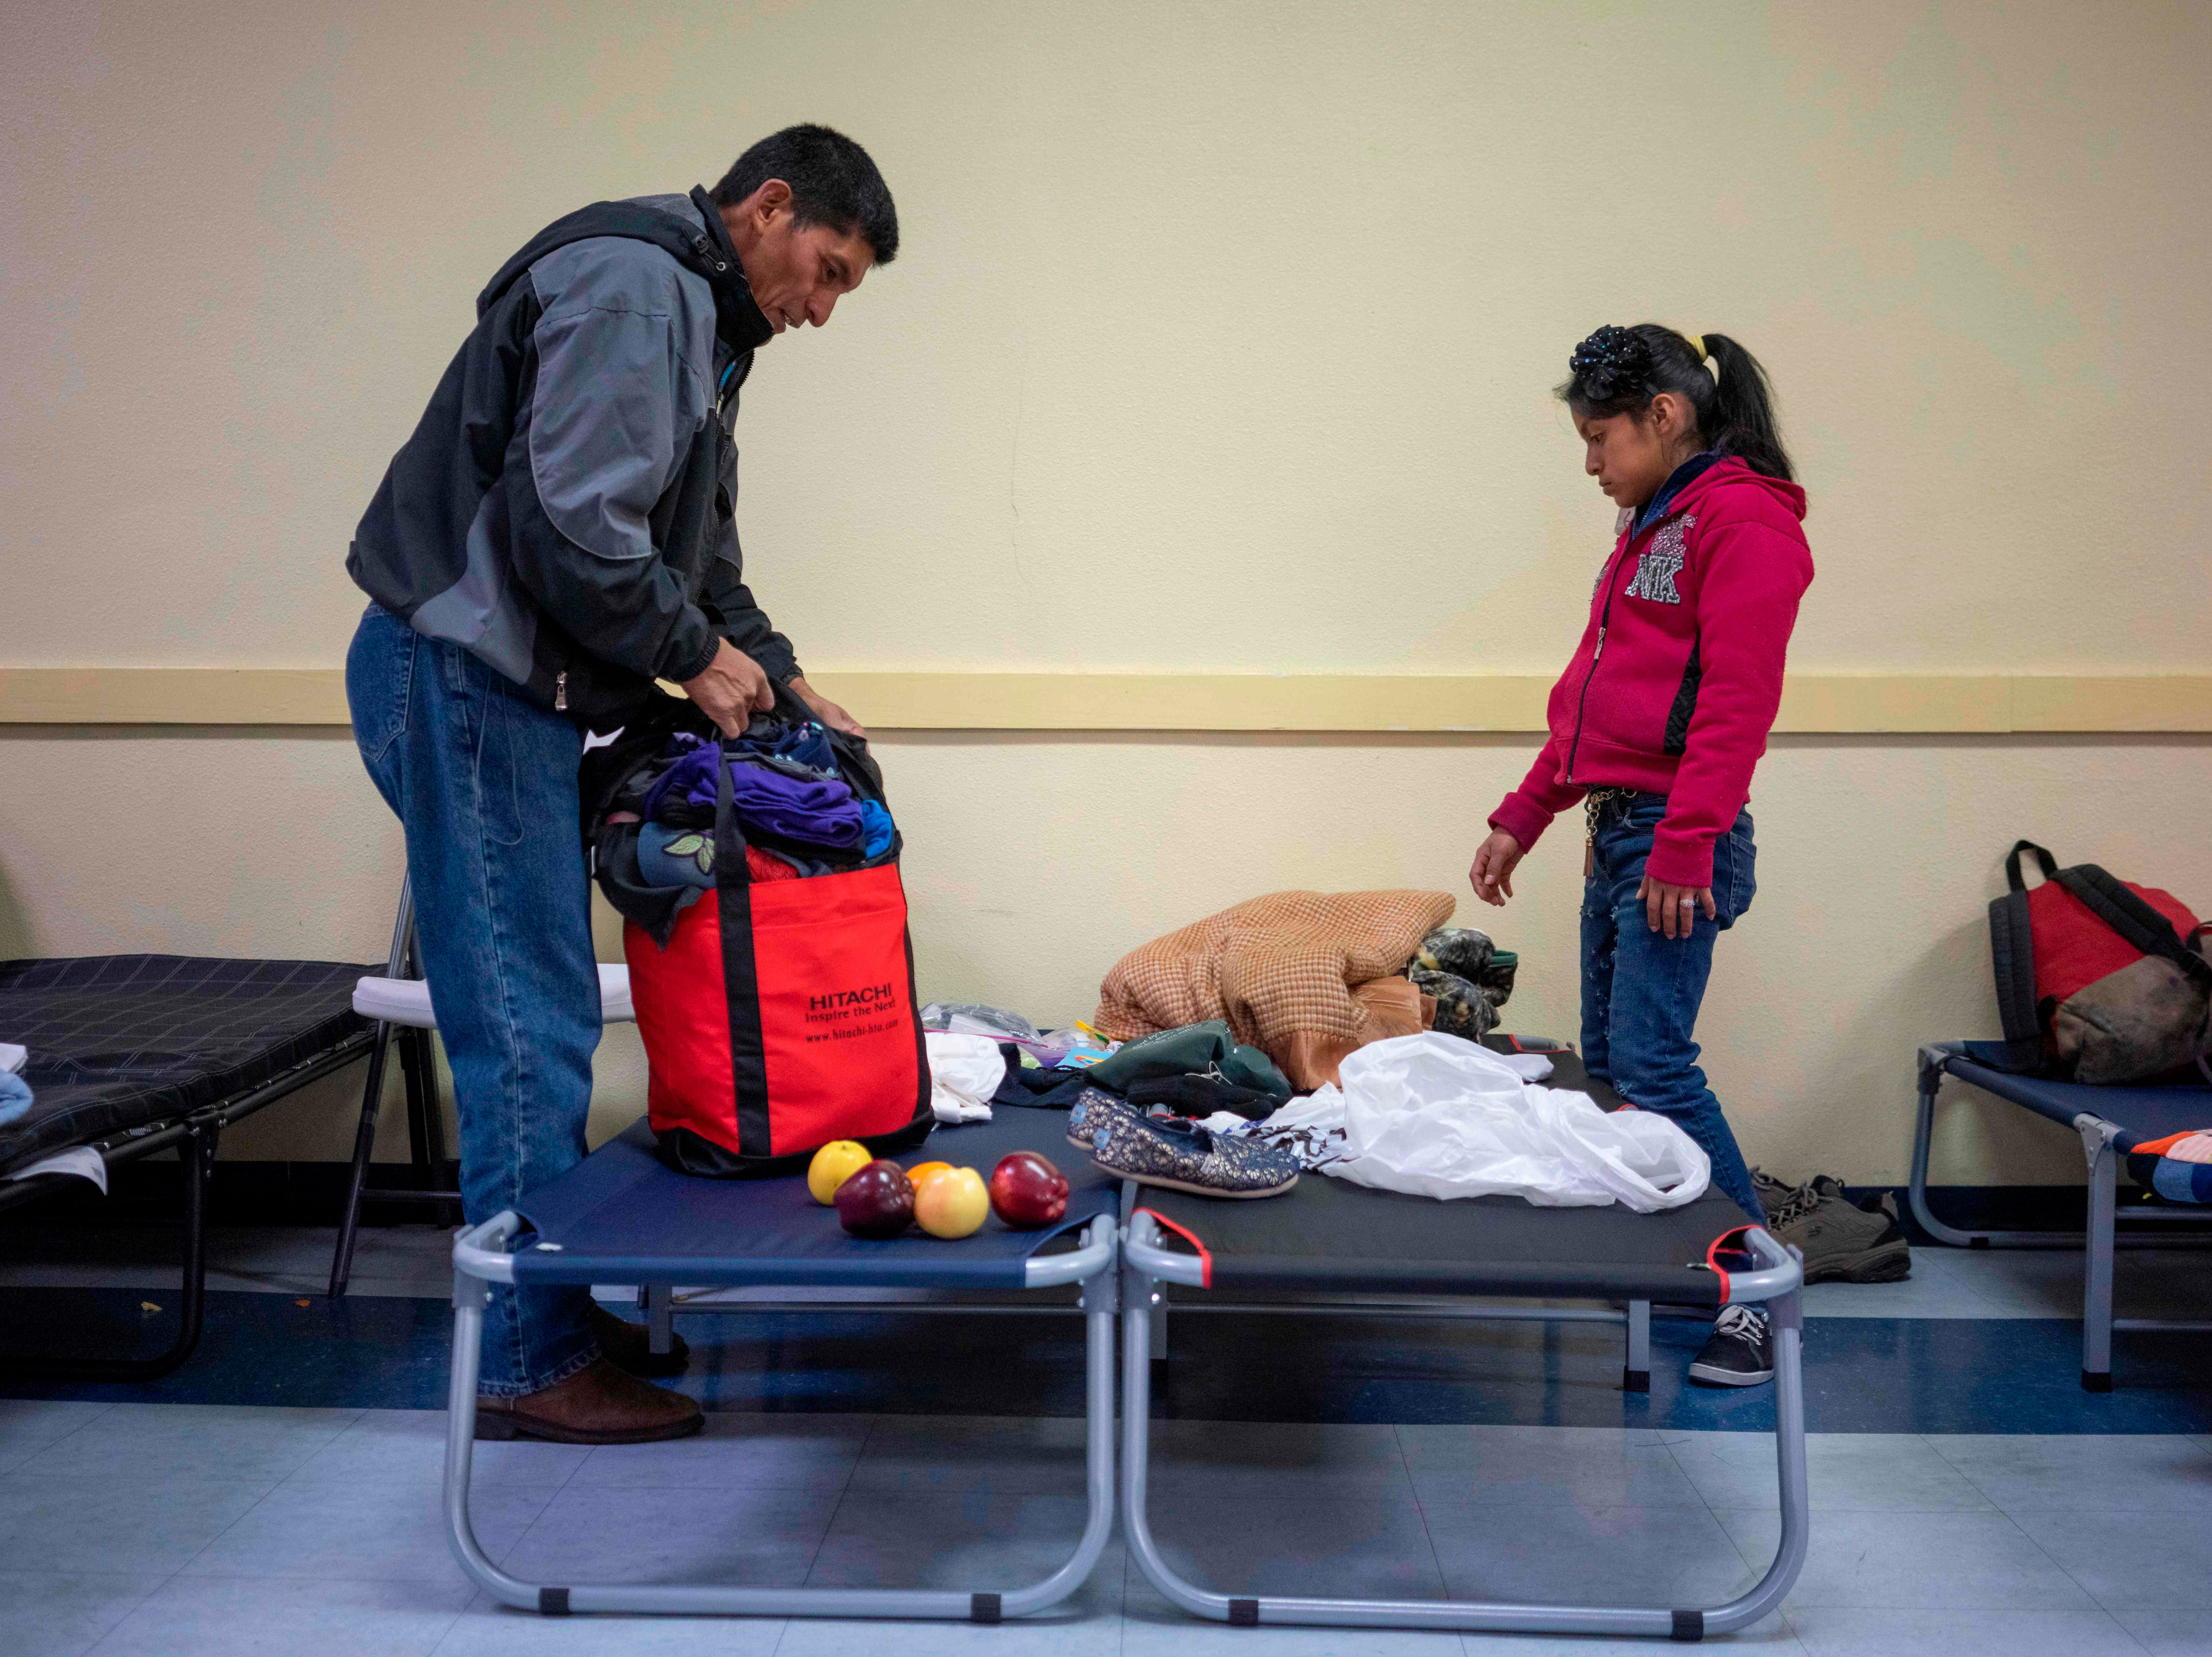 Ovidio Lopez Tum, left, 53, and his daughter Ingrid Maribel, 12, pack up their belongings for their trip the following day, at the church hall of the Basilica of San Albino in Mesilla, New Mexico on Jan. 2, 2019.